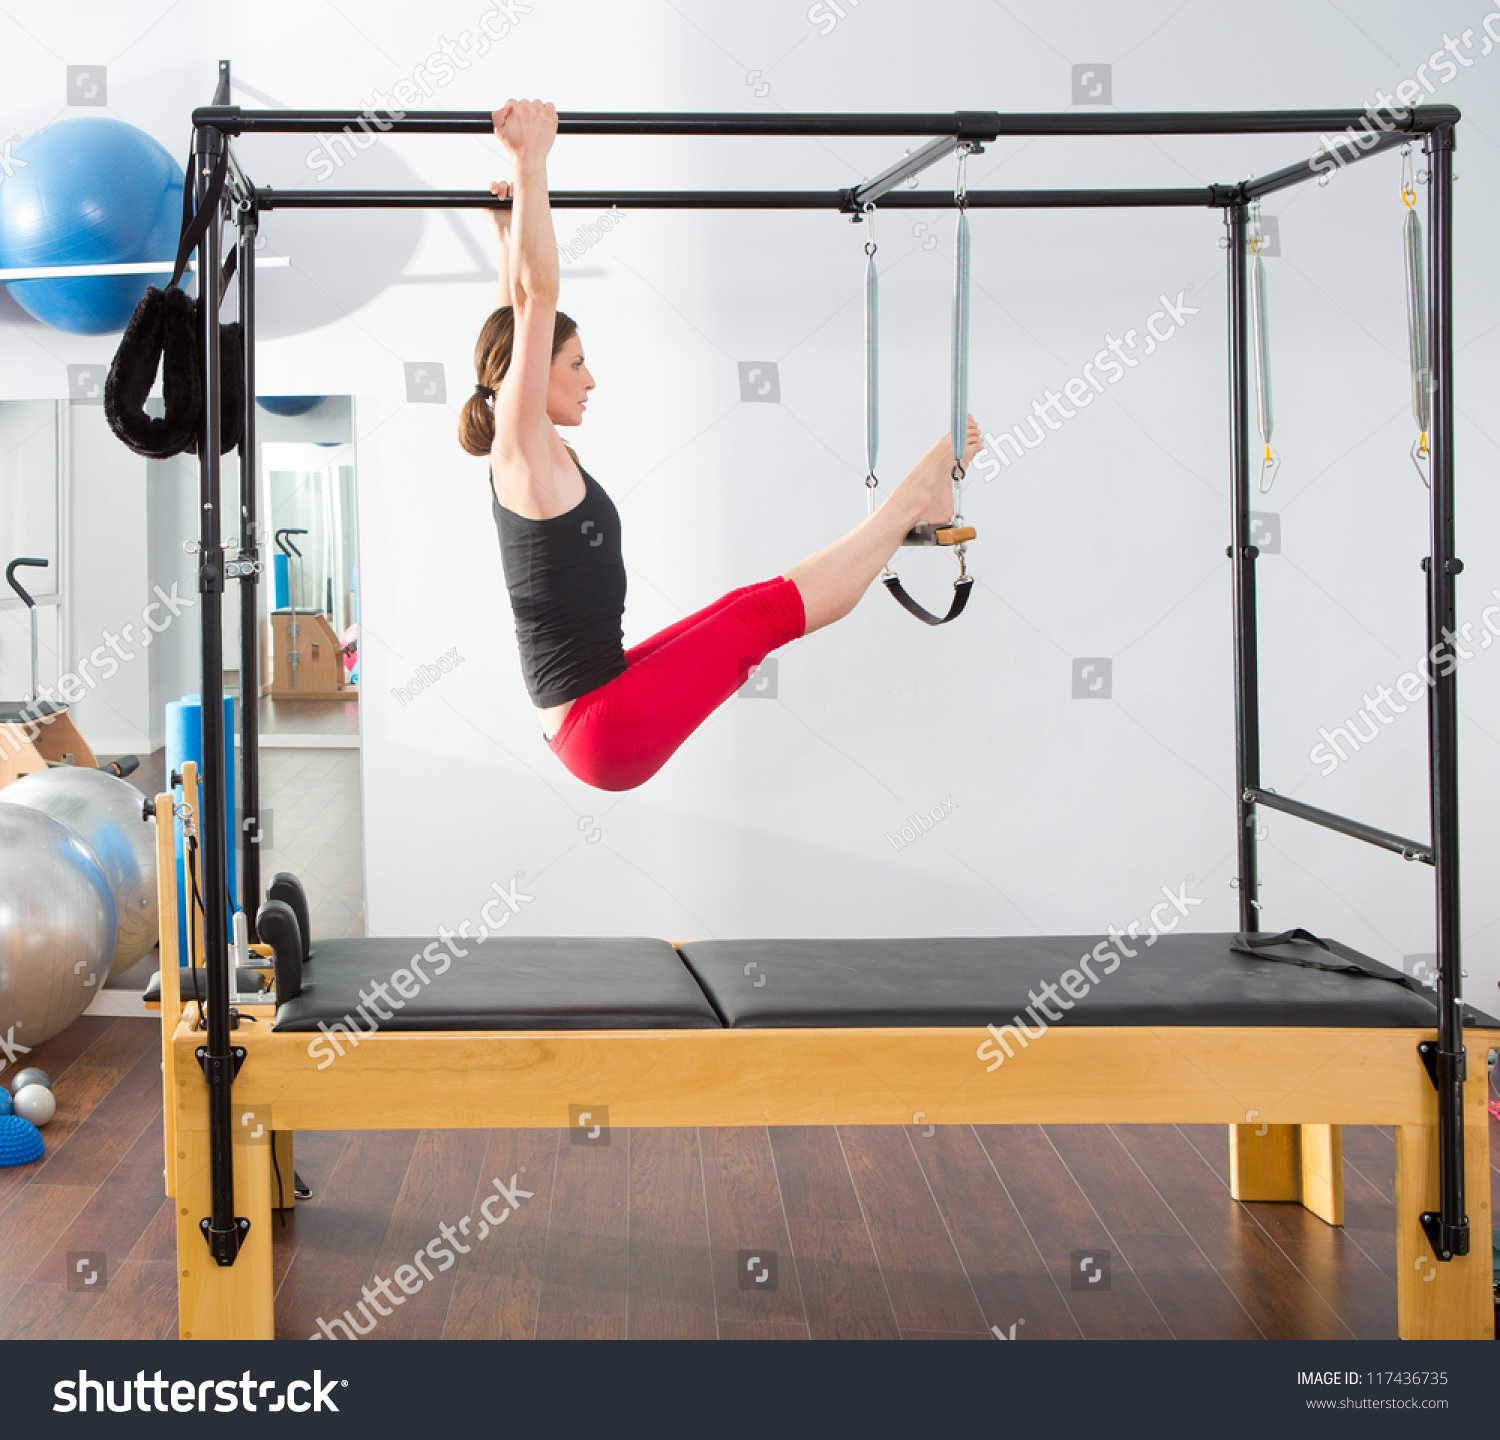 Woman Pilates Chair Exercises Fitness Stock Photo: Aerobics Pilates Instructor Woman In Cadillac Fitness